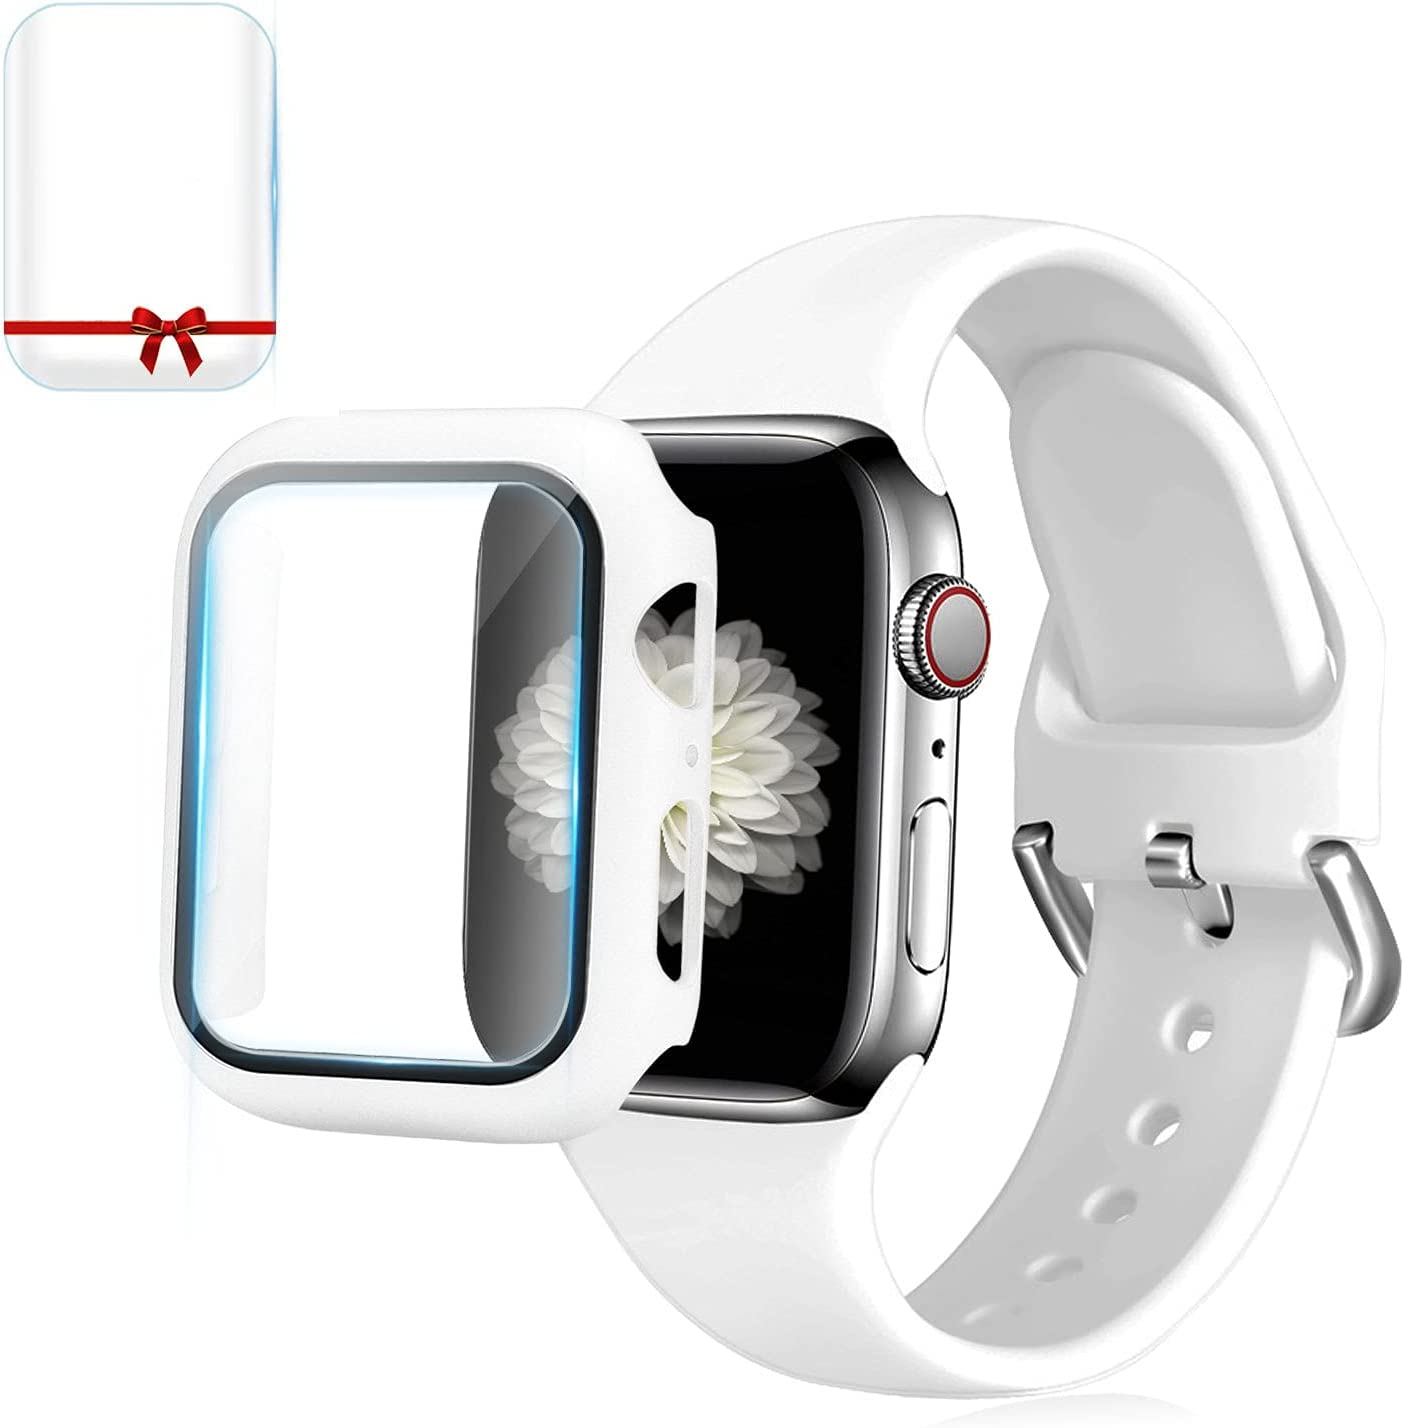 Foranyo 3 in 1 Compatible with Apple Watch Band 44mm 42mm 40mm 38mm, Soft Silicone Sport Replacement Strap Watch Band for Women & Men, Case with Tempered Glass Screen Protector Compatible with iWatch for Series SE 6 5 4 3 2 1 (White, 44mm)